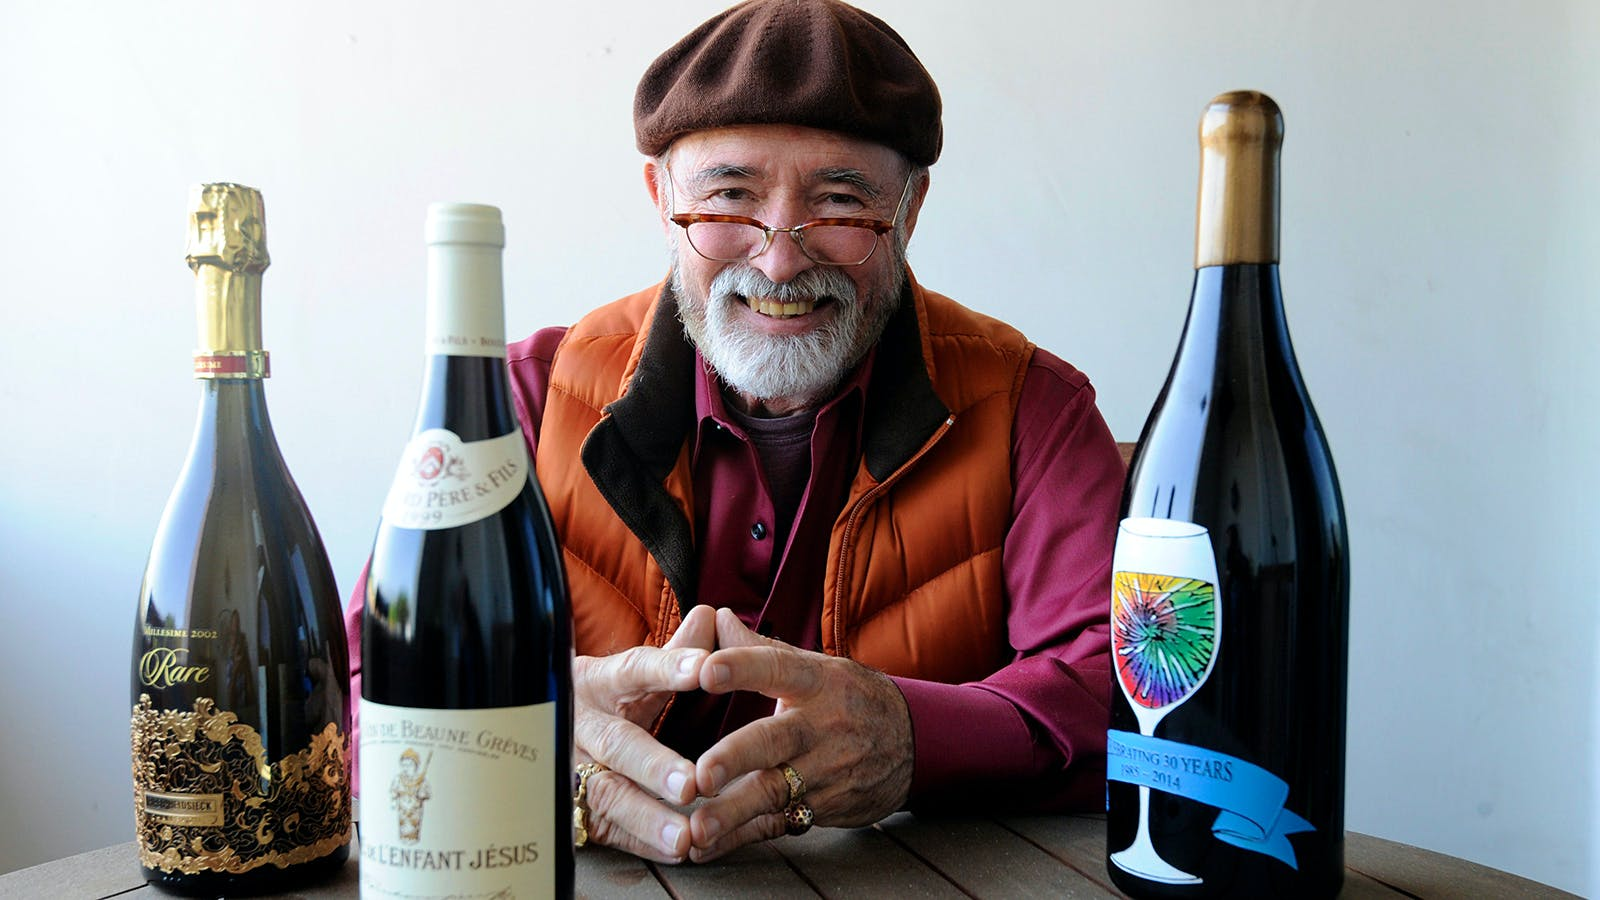 Archie McLaren, Wine Lover and Founder of Central Coast Wine Classic, Dies at 75